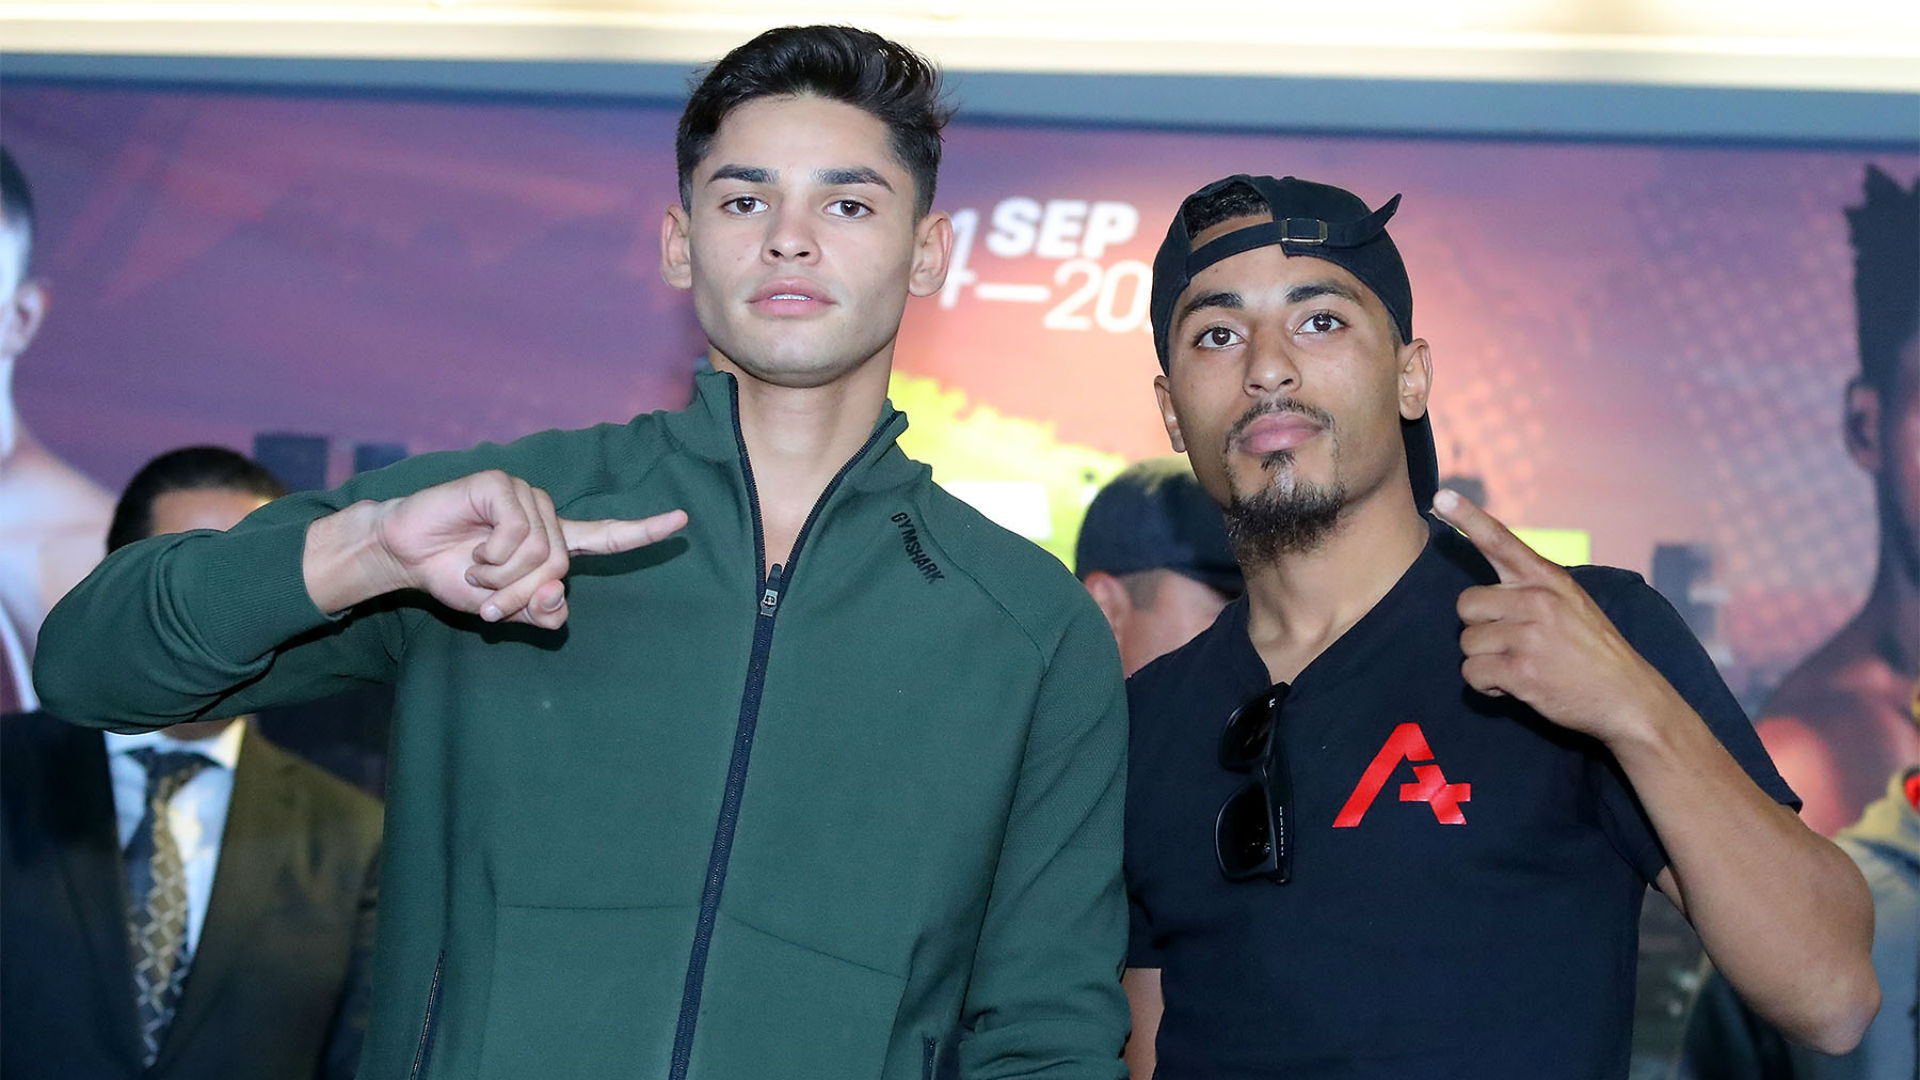 Ryan Garcia fight time, live stream, price for Munguia-Allotey card's co-main event